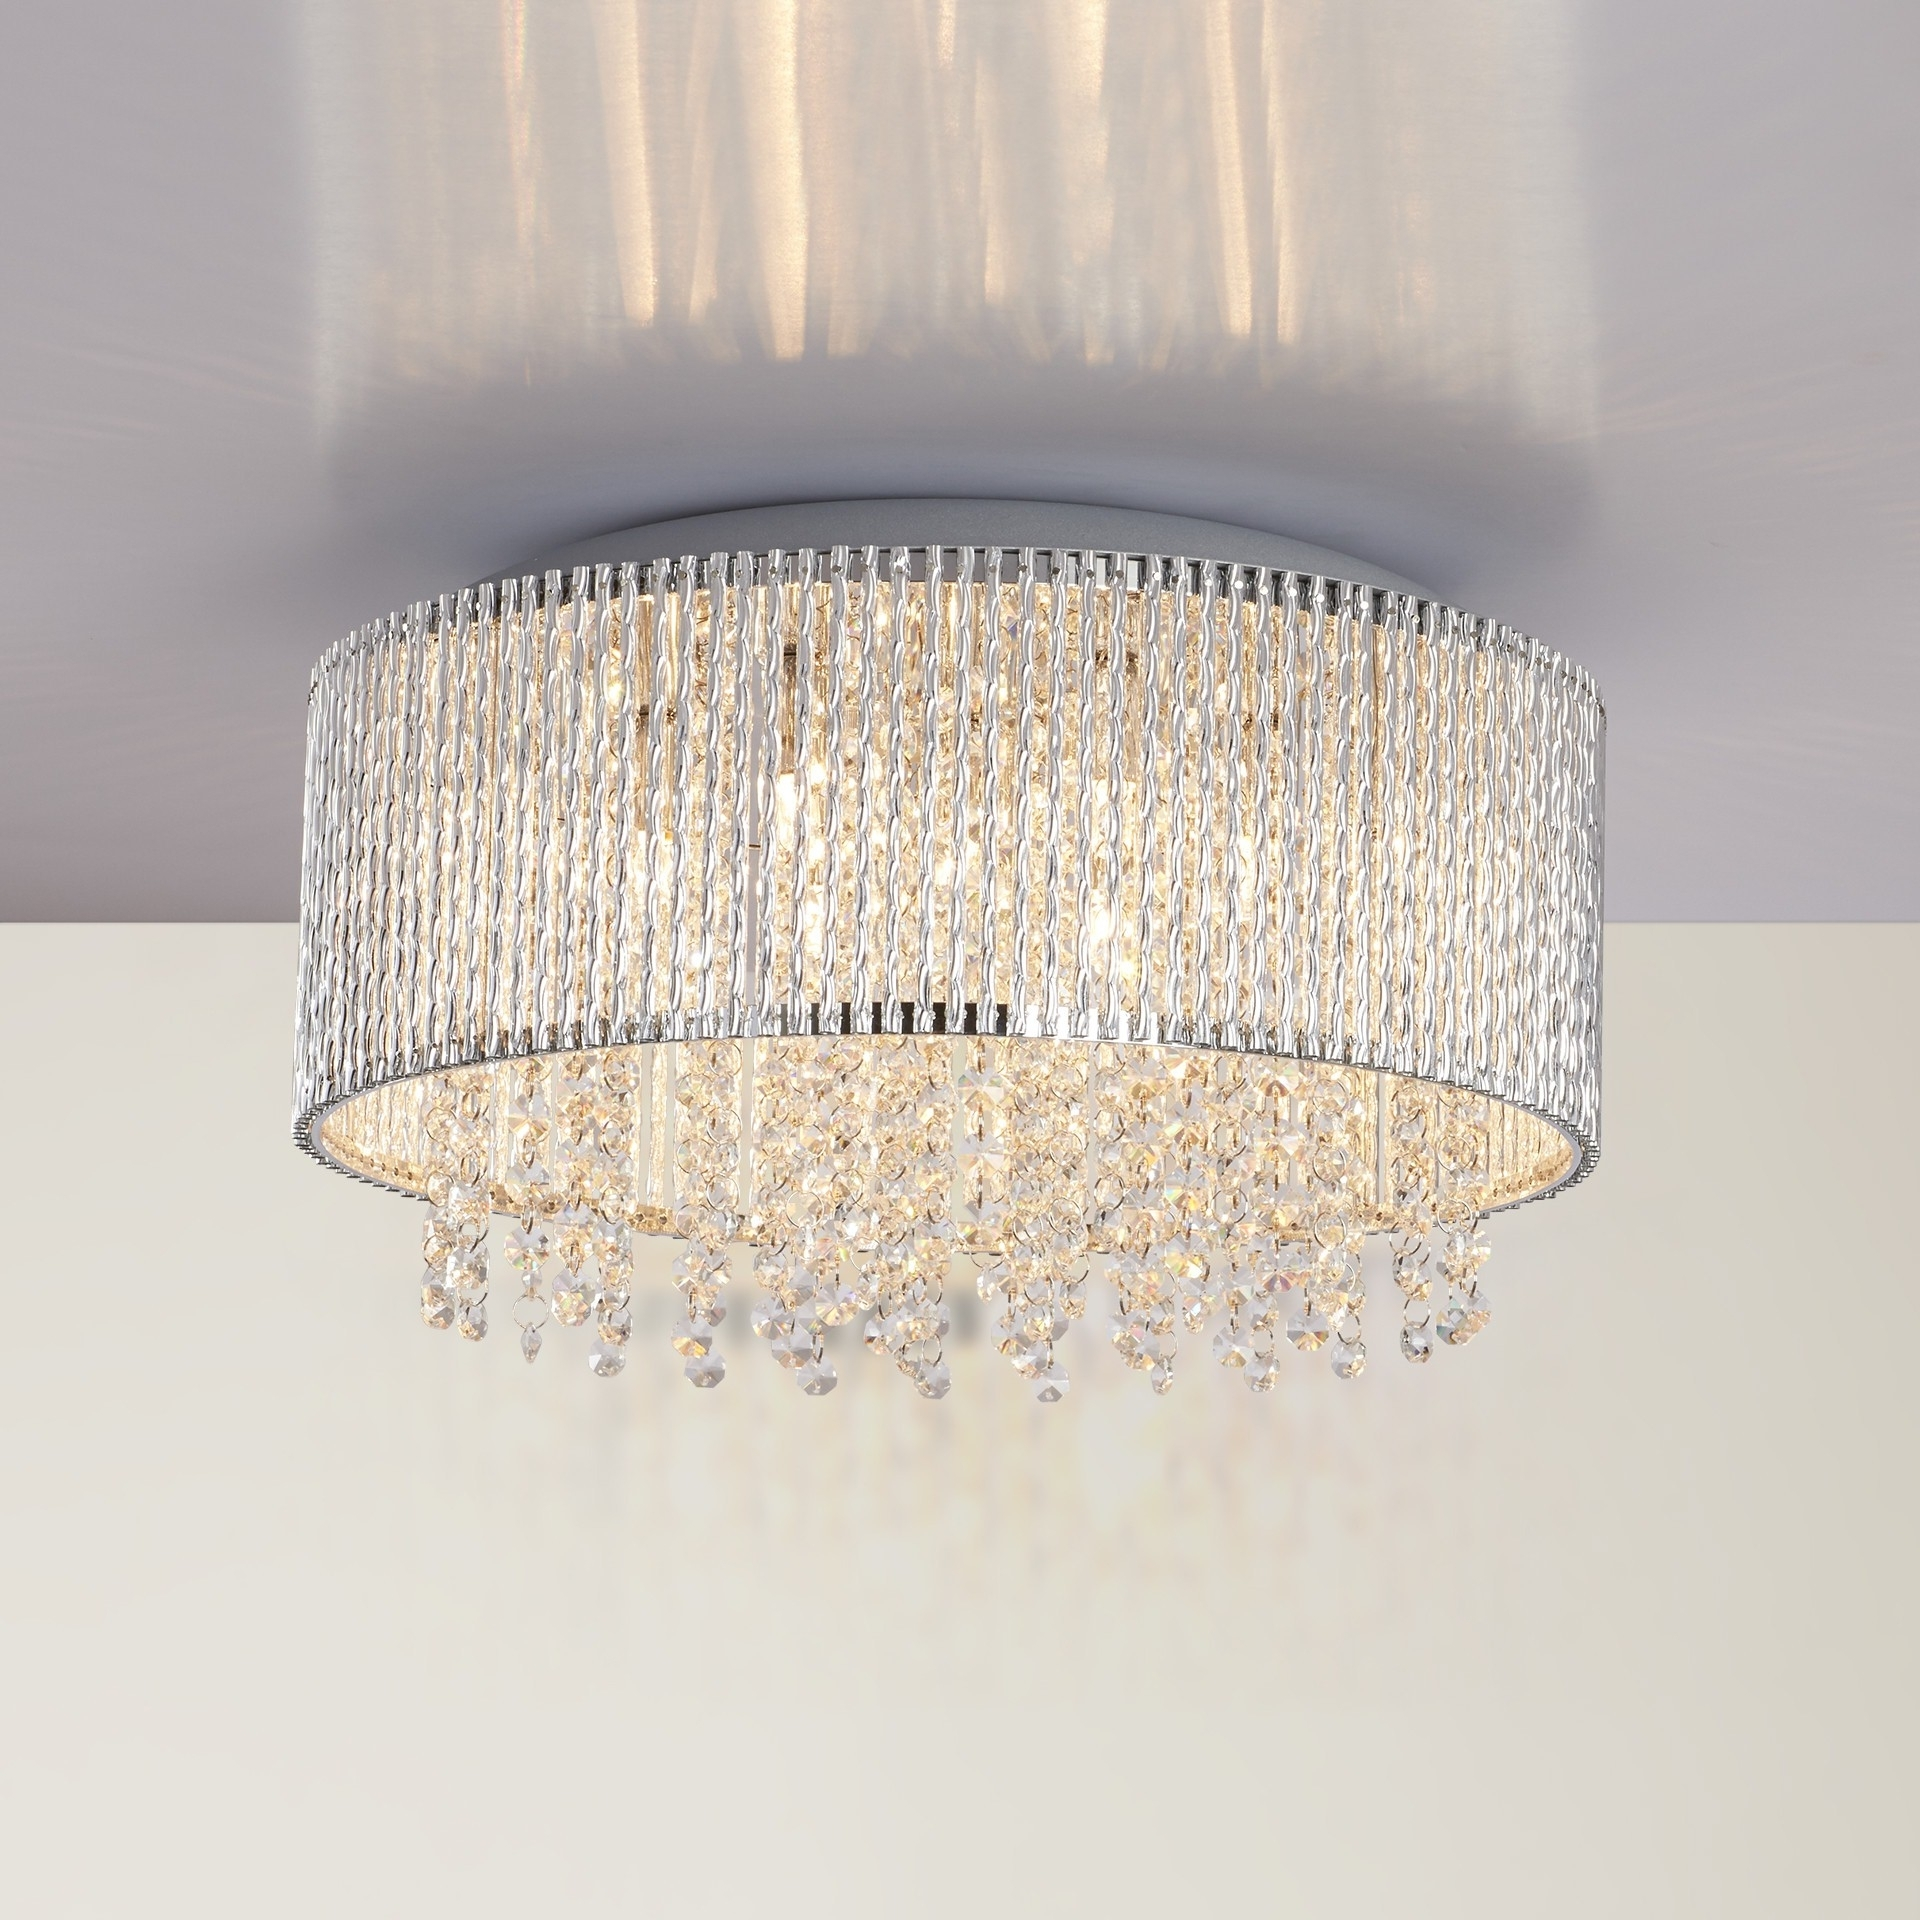 Well Known Flush Chandelier For Chandeliers Design : Wonderful Trend Flush Chandelier For Small Home (View 5 of 15)